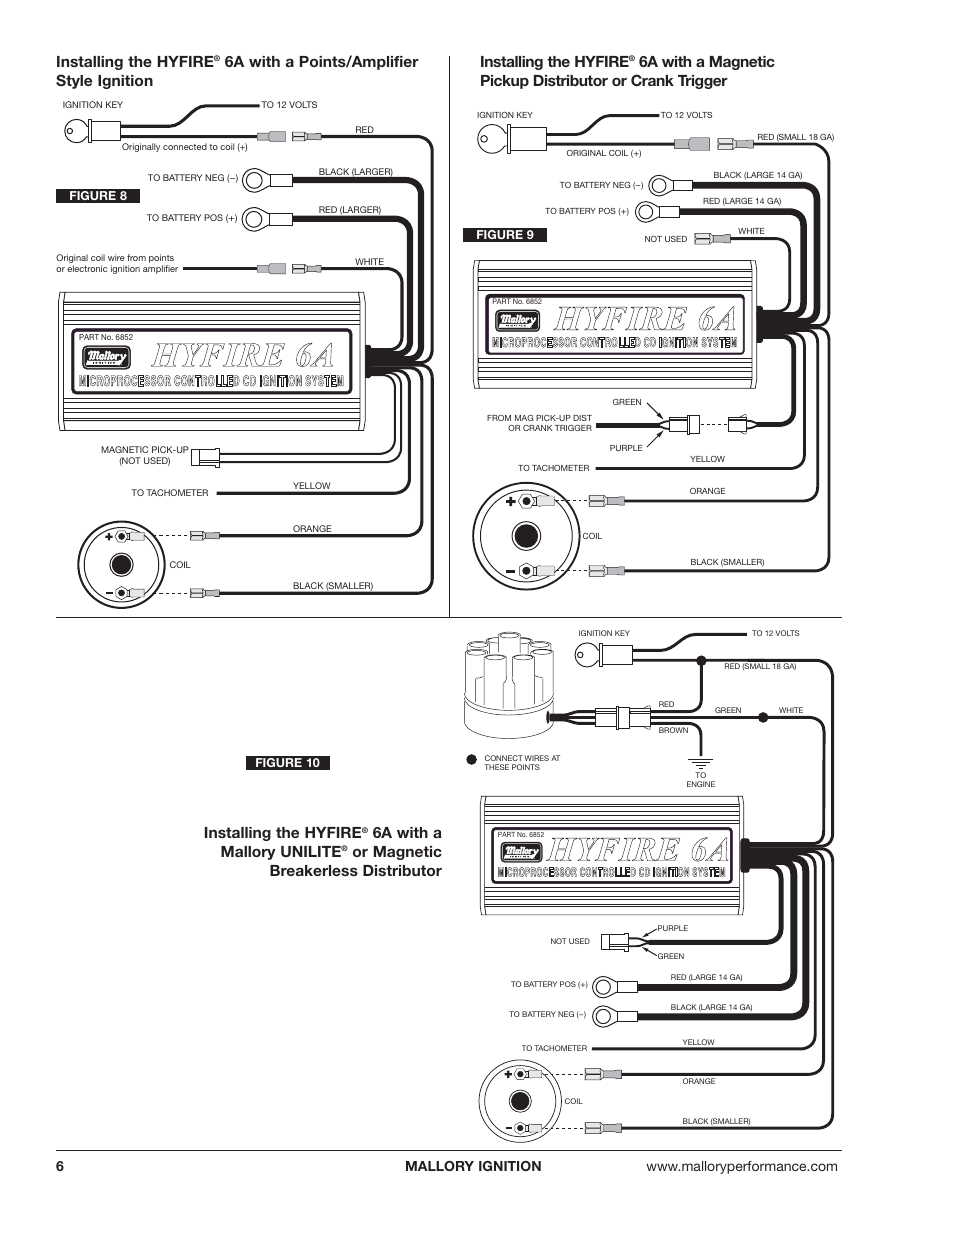 mallory 6a ignition wiring diagram